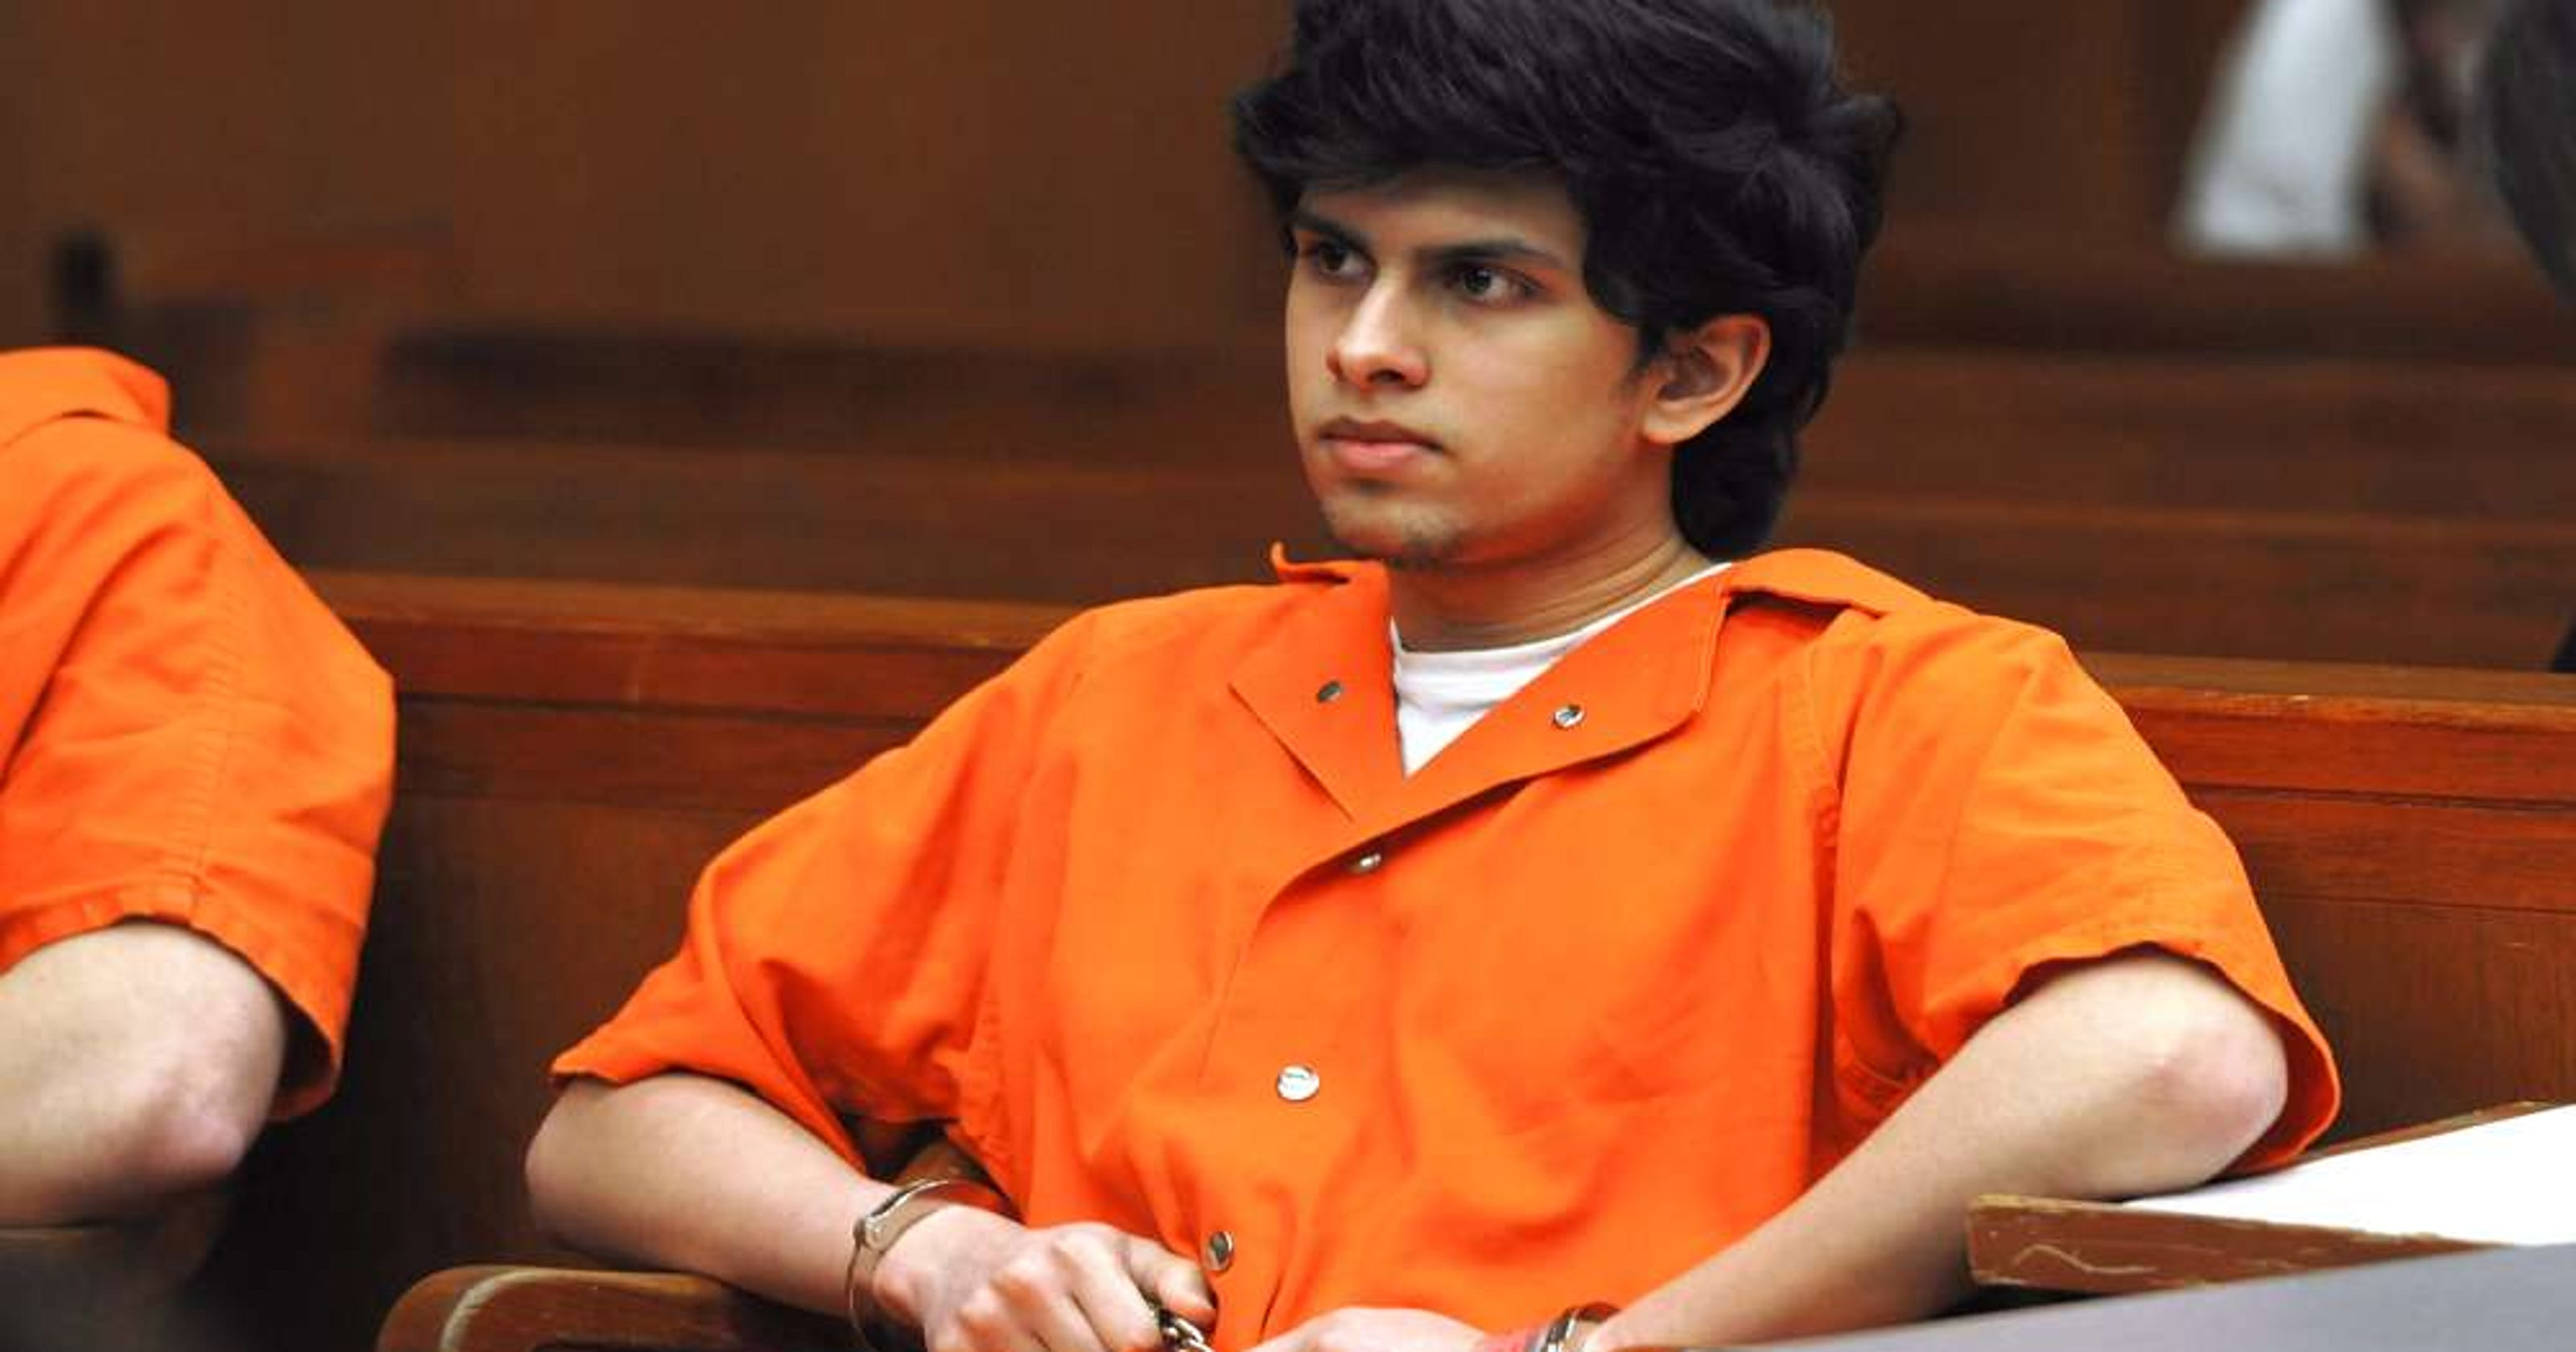 Jury selection begins for trial of Lodi man charged in fire